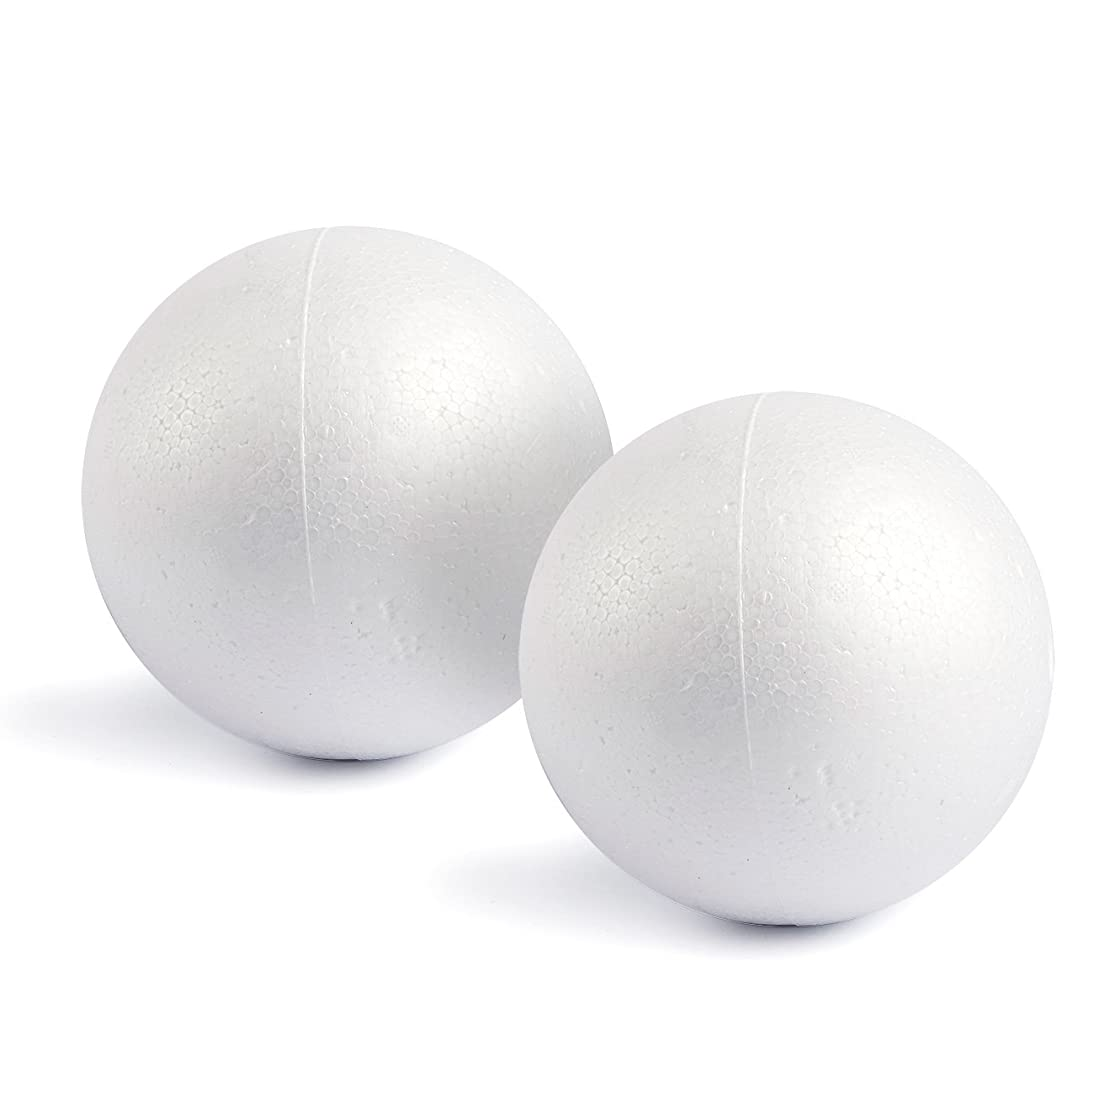 Craft Foam Balls - 2-Pack Large Smooth and Round Polystyrene Foam Balls for Art and Craft Use - Makes DIY Ornaments, Wedding Decor, Science Modeling, School Projects - White, 7.87 Inches in Diameter